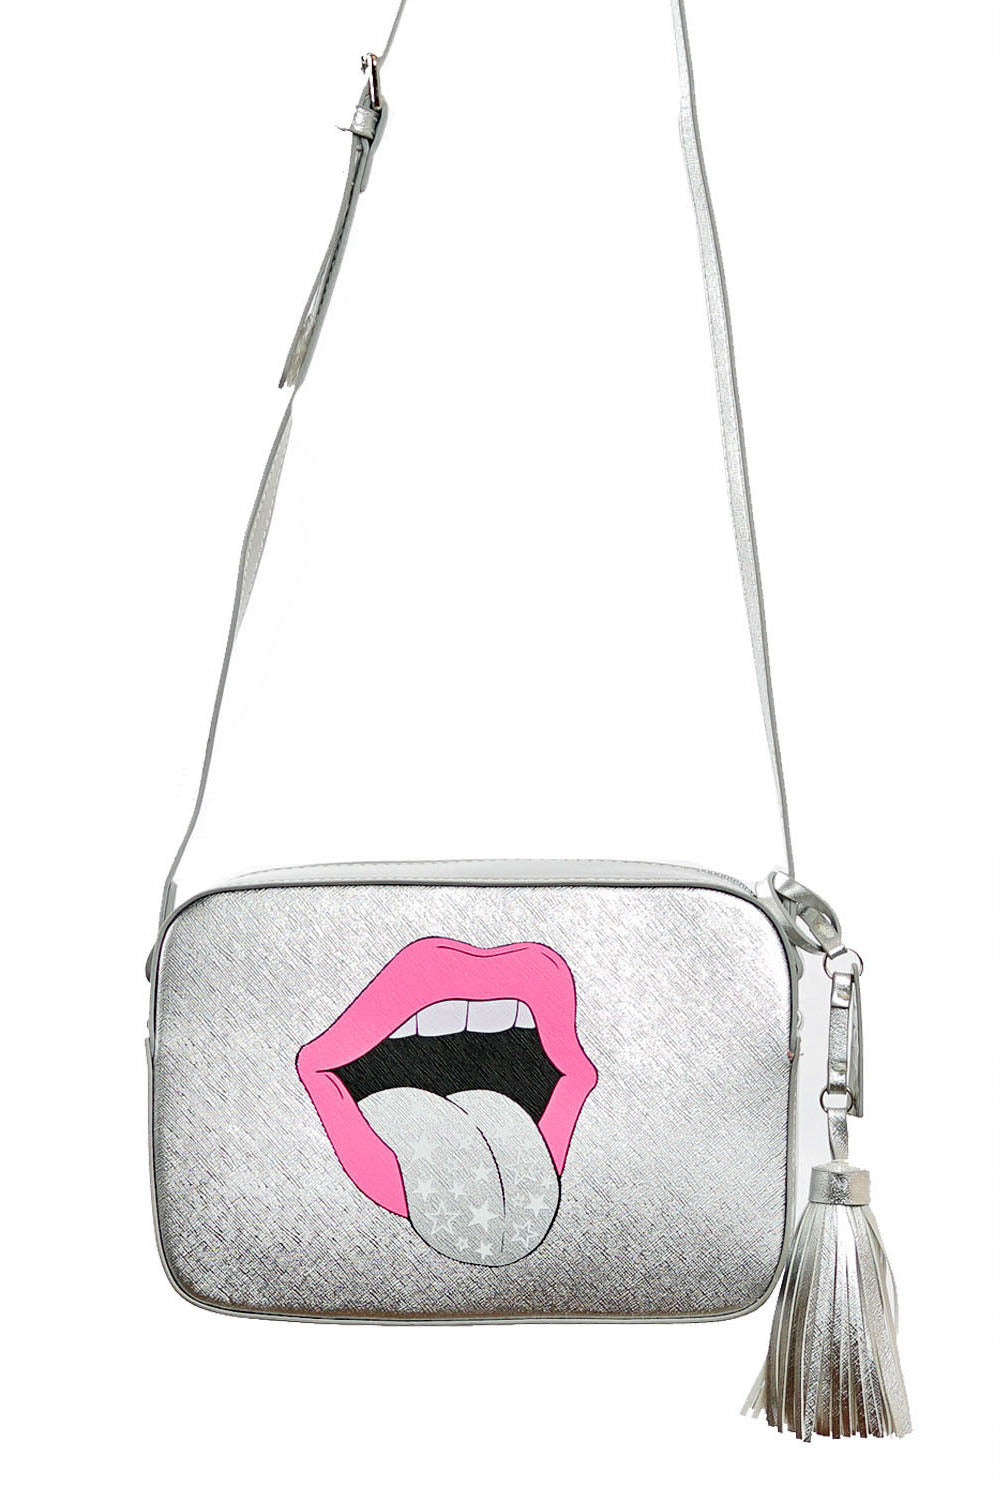 VEGAN CROSSBODY BAG - Rollin With The Homies (Silver)